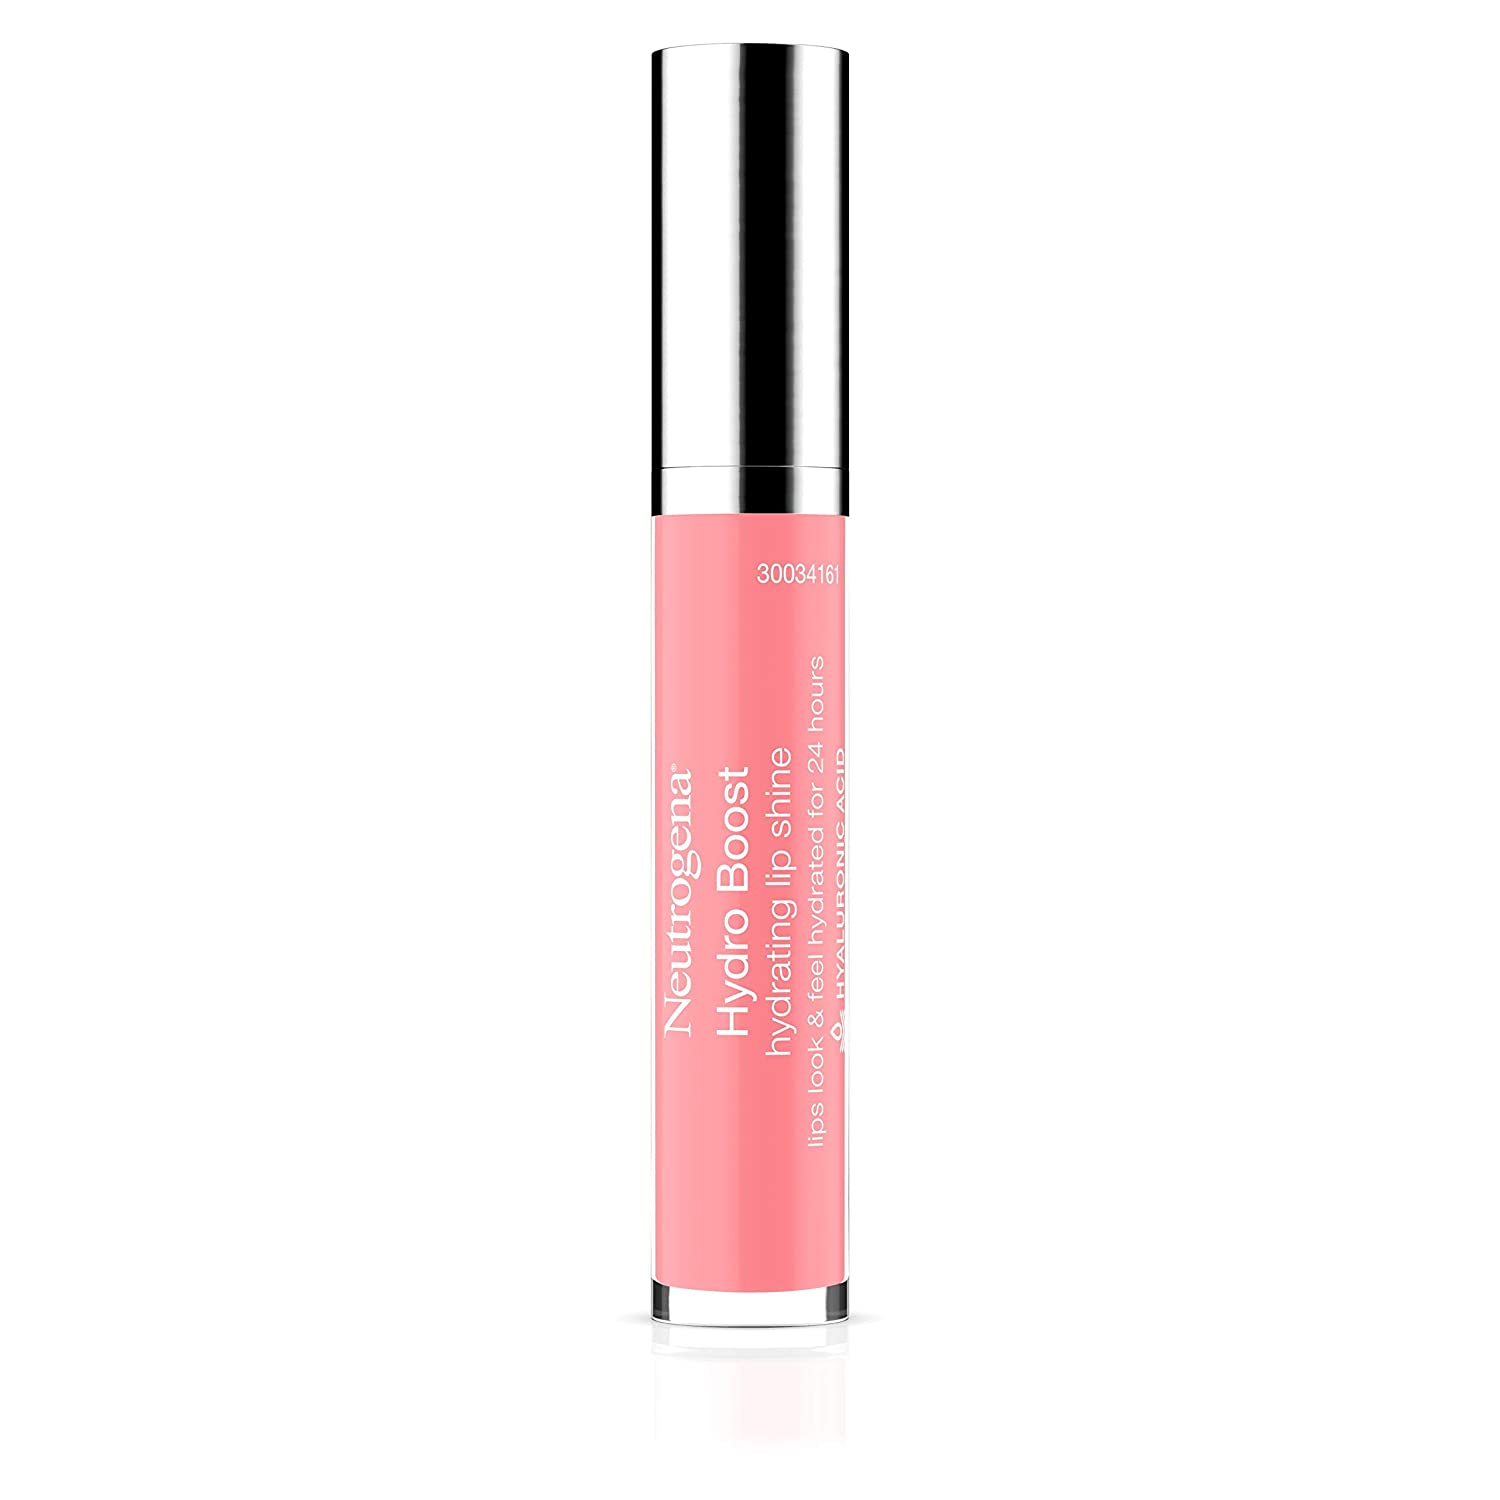 Neutrogena Hydro Boost Hydrating Lip Shine, Pink Sorbet 40, 0.10 Ounce